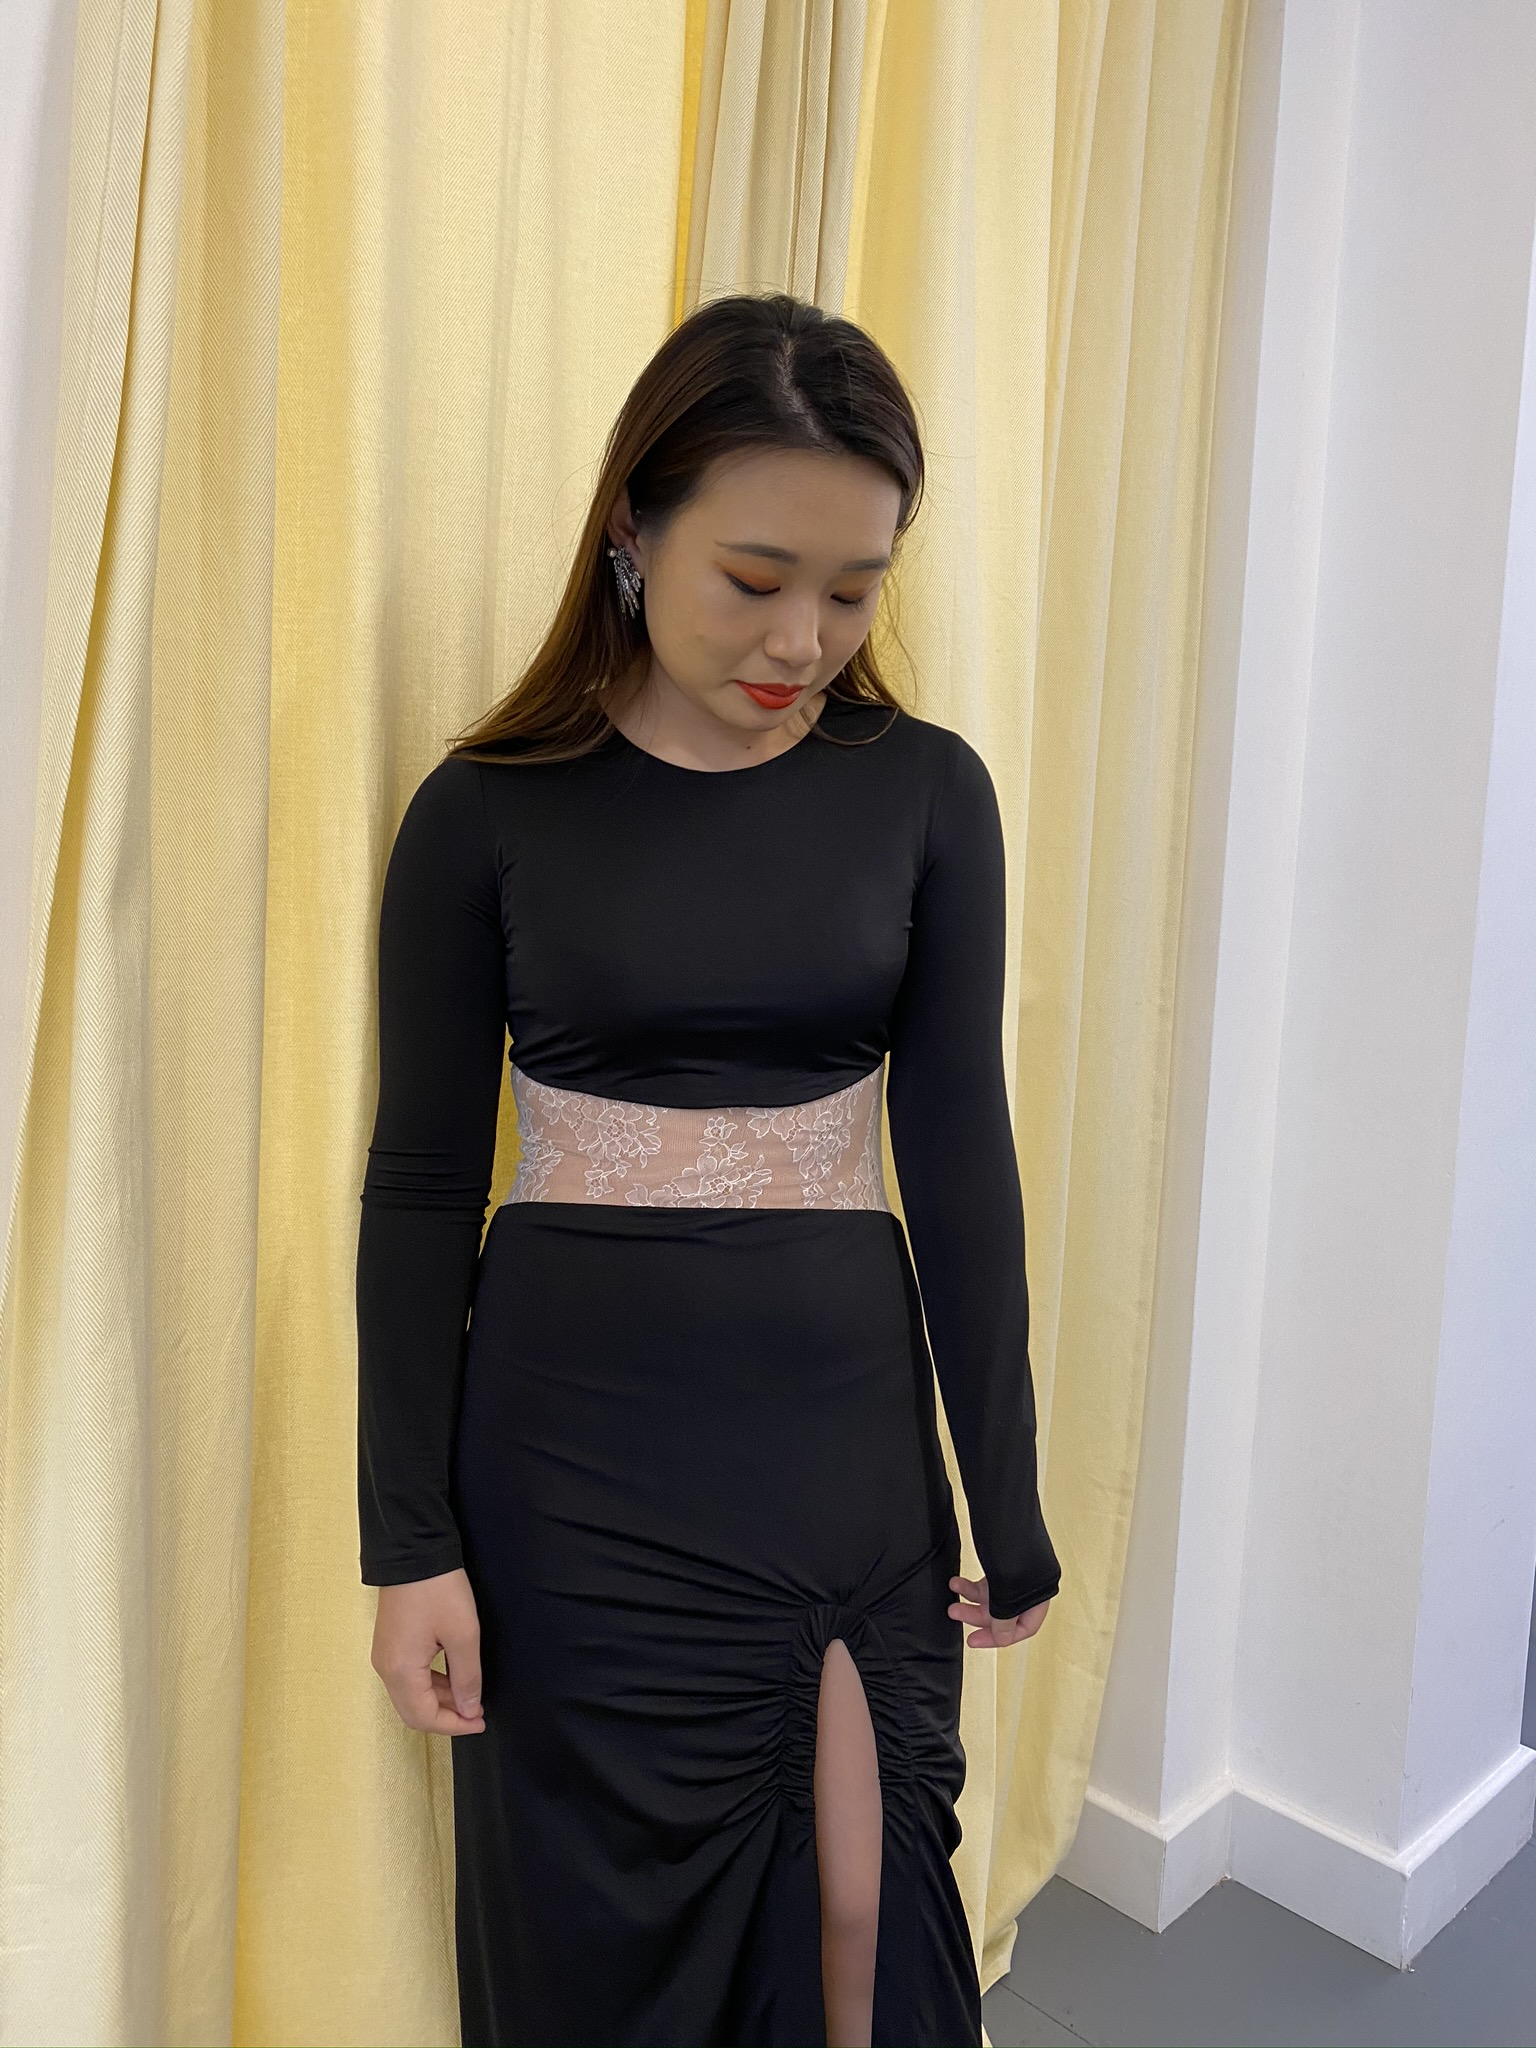 Avatar Dress - Black by Jessica K on curated-crowd.com